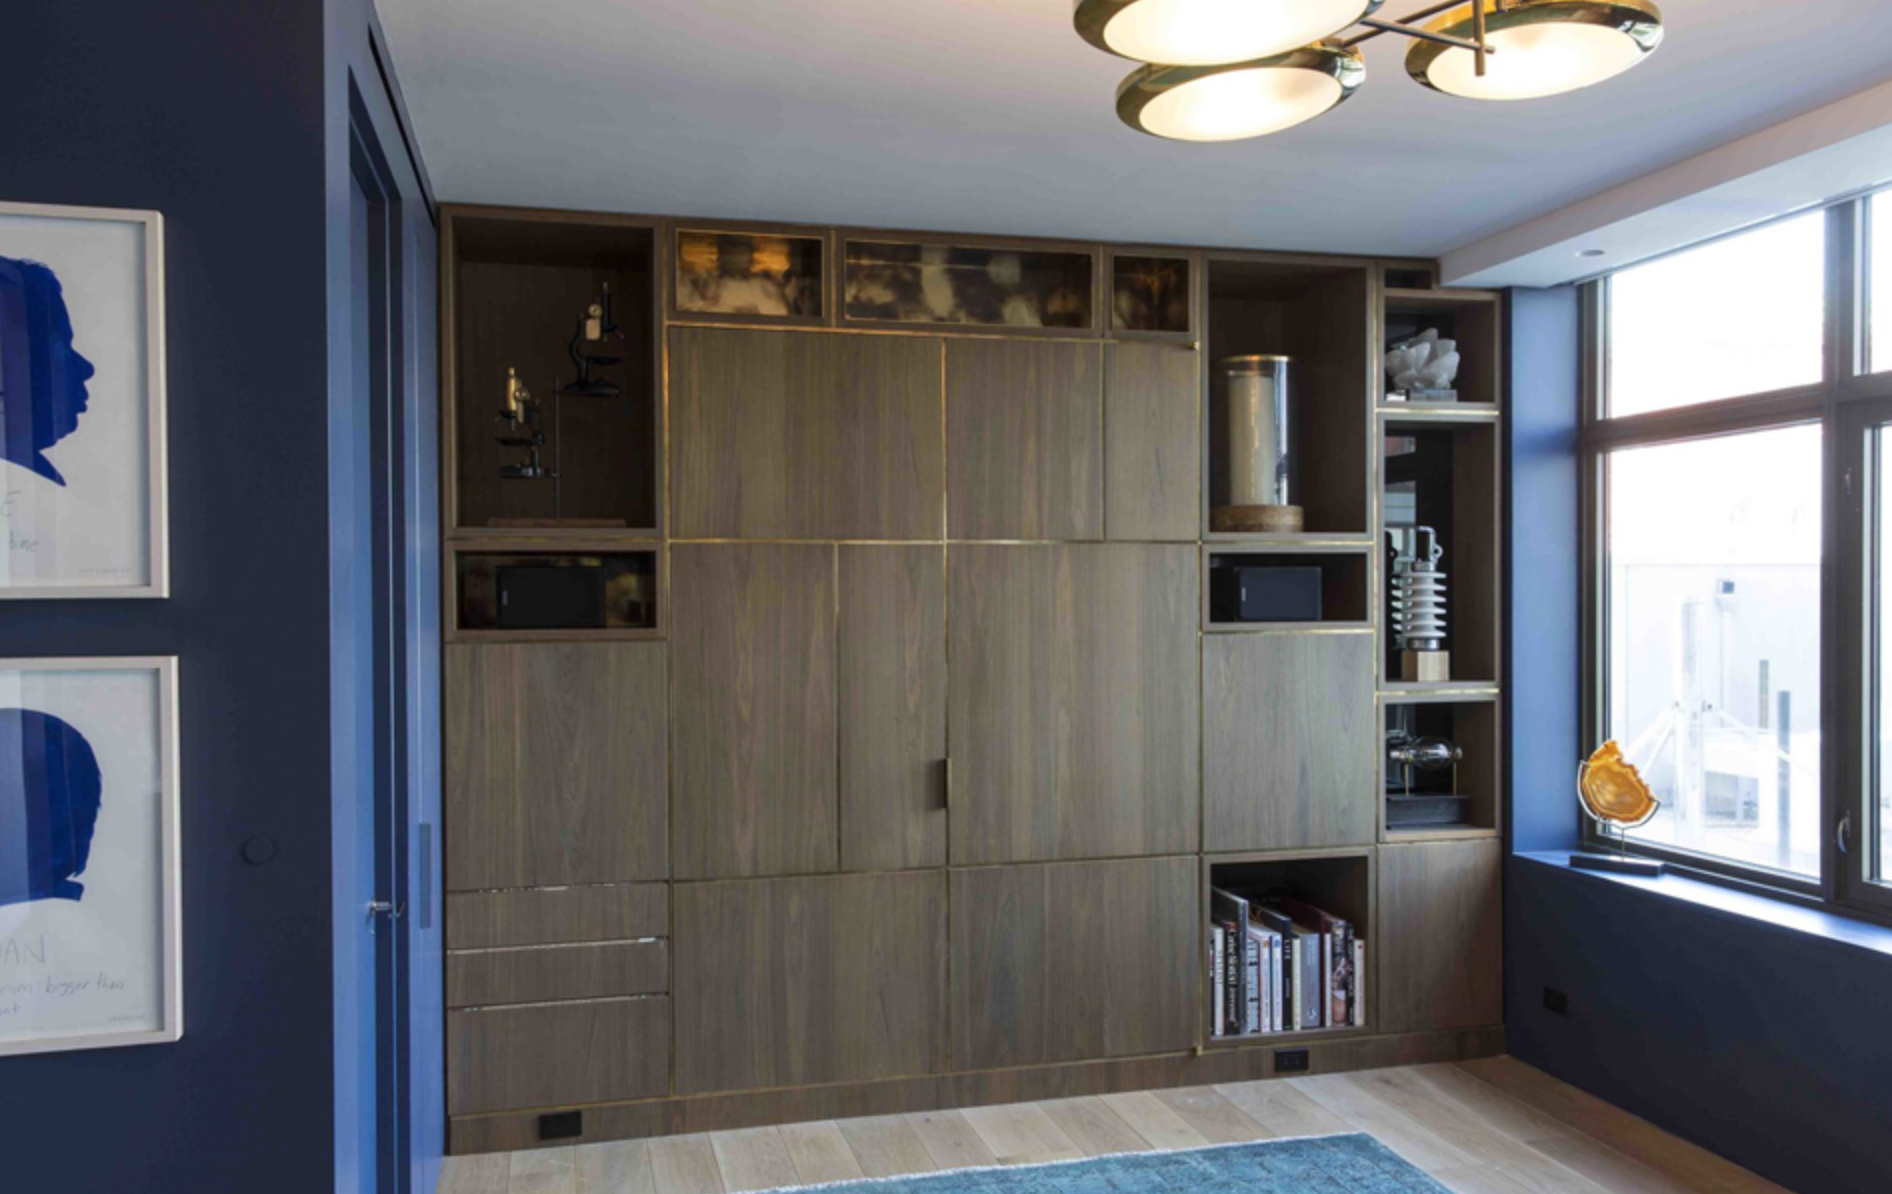 When closed, the Murphy bed in this Manhattan apartment looks like a wall of walnut cabinetry with brass inlays. Photo by Goldenberg Photography